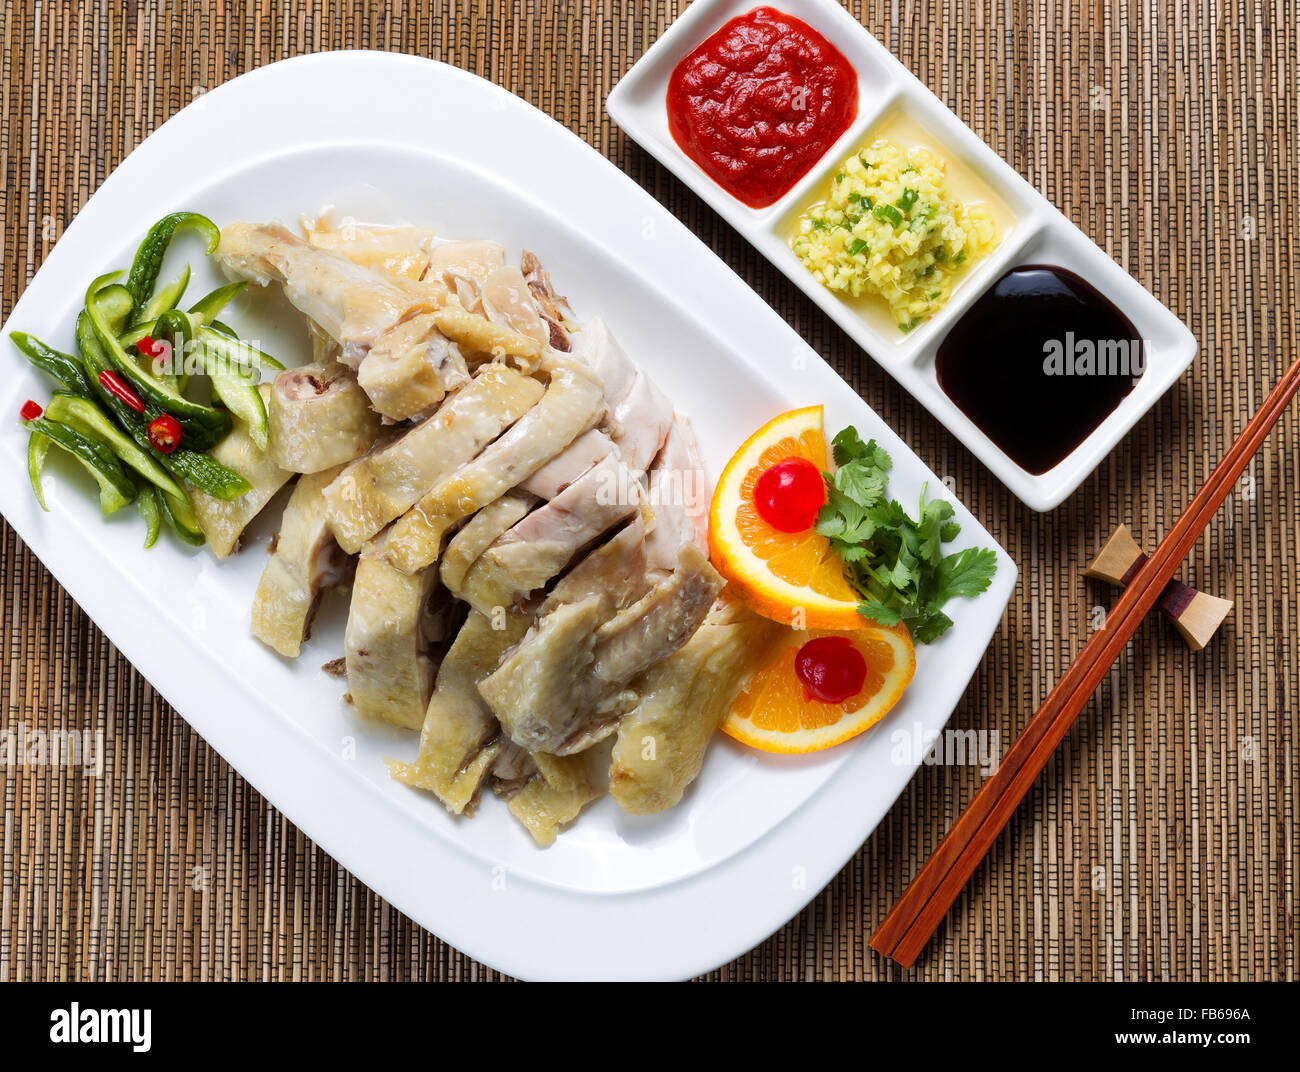 Top view of sliced roasted chicken and vegetables with dipping sauces. Bamboo mat underneath dish. - Stock Image